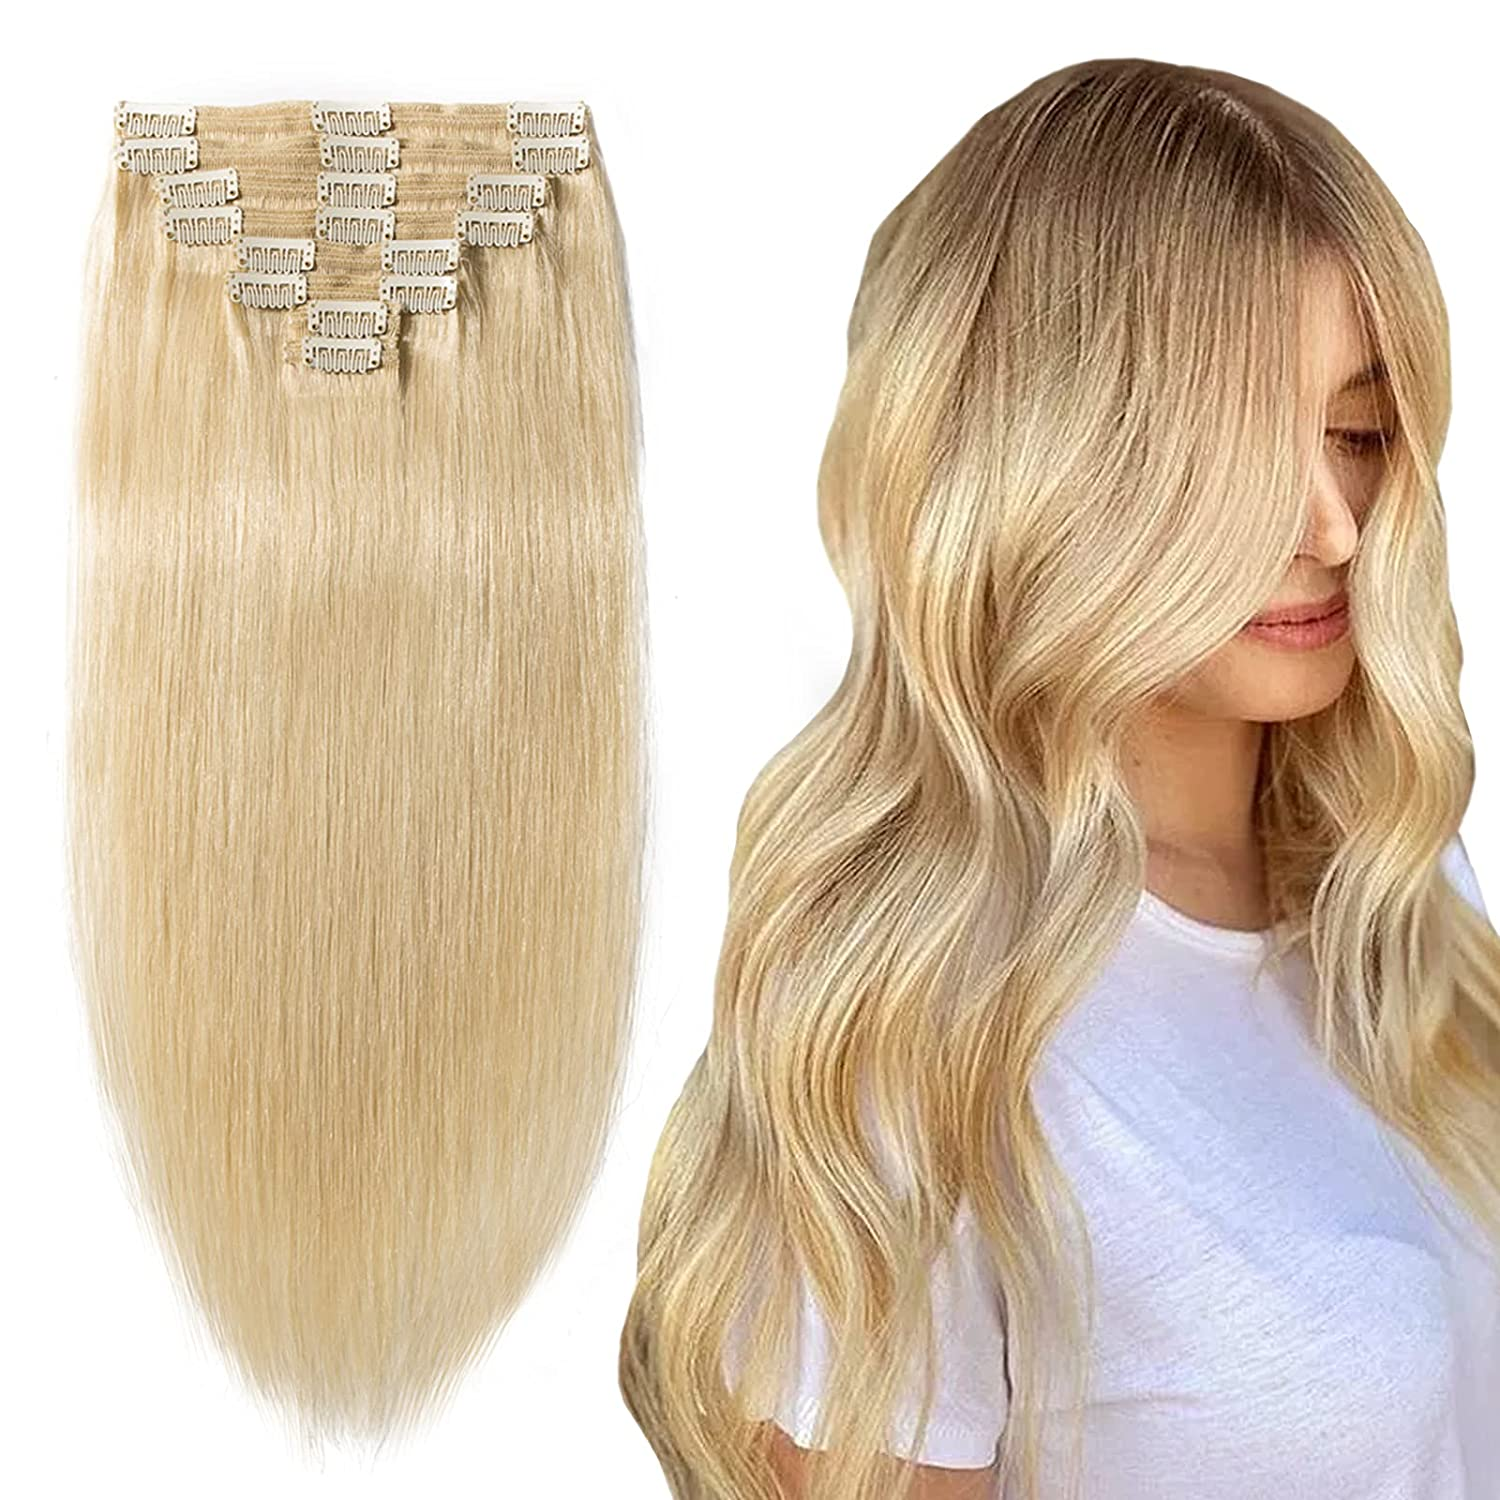 Hairro Clip In Hair Ranking TOP12 Blonde Human New arrival Extensions Remy